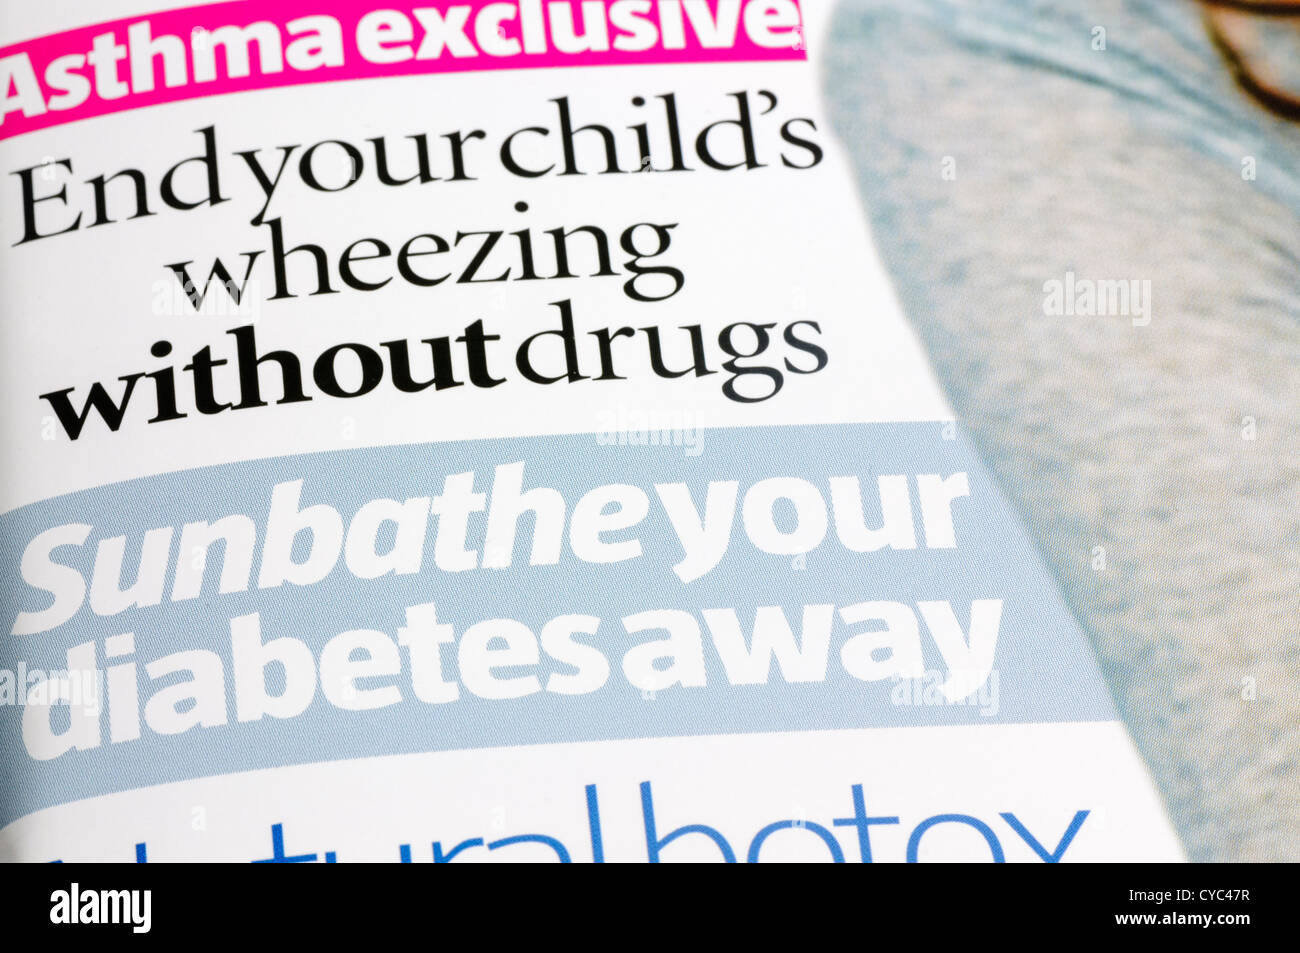 Cure diabetes by sunbathing, and cure asthma without drugs in 'What Doctors Wont Tell You', a controversial - Stock Image